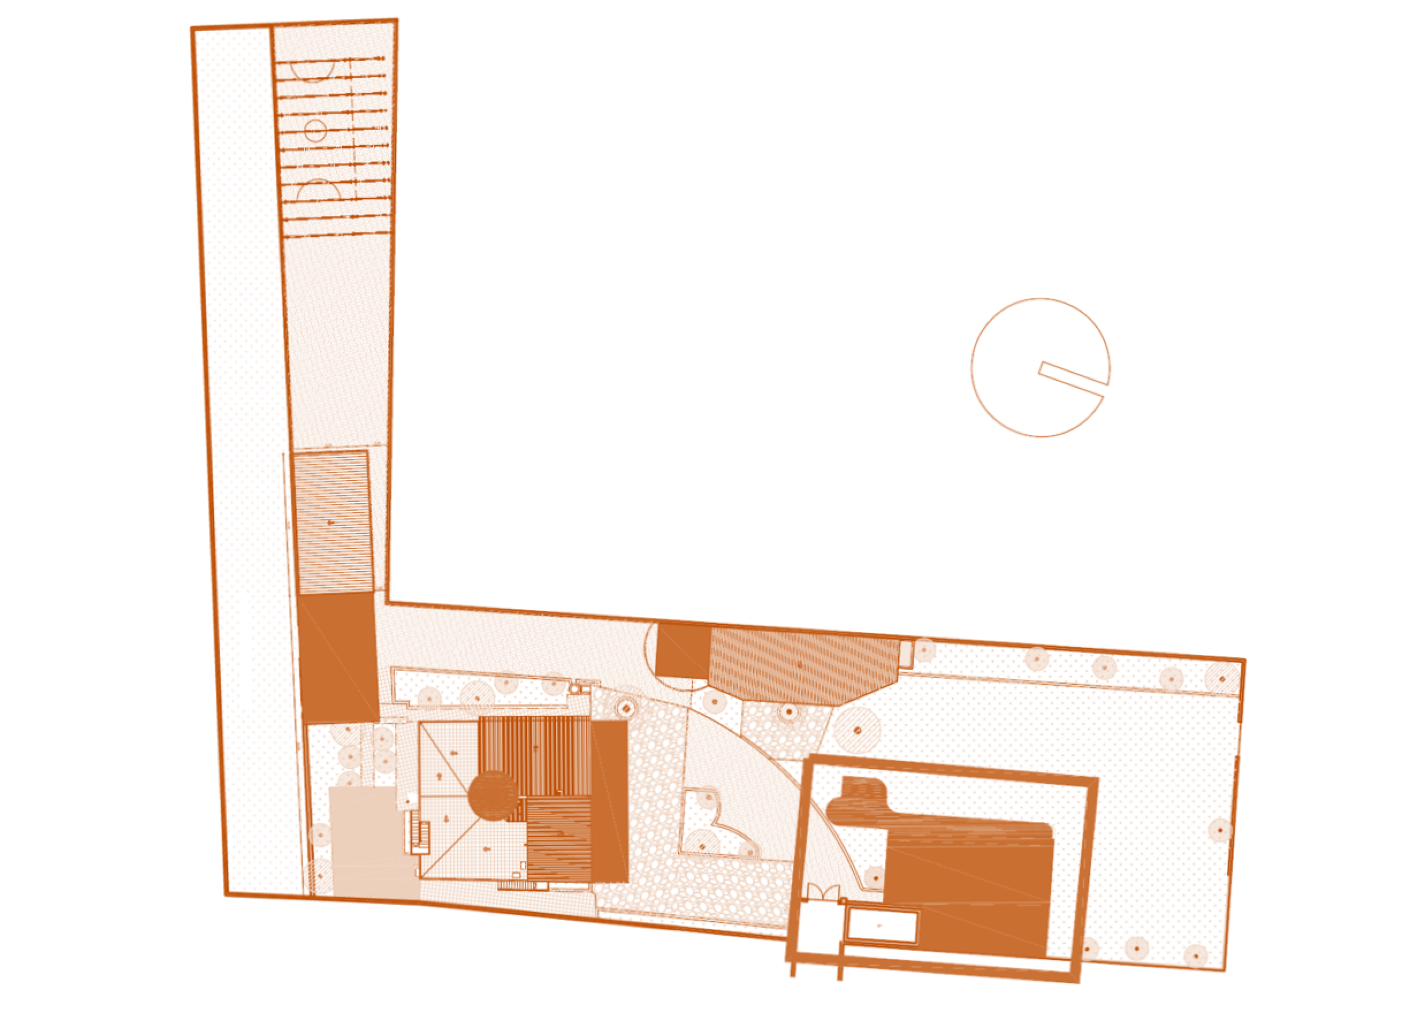 Architect´s drawing of the location of the secondary school building